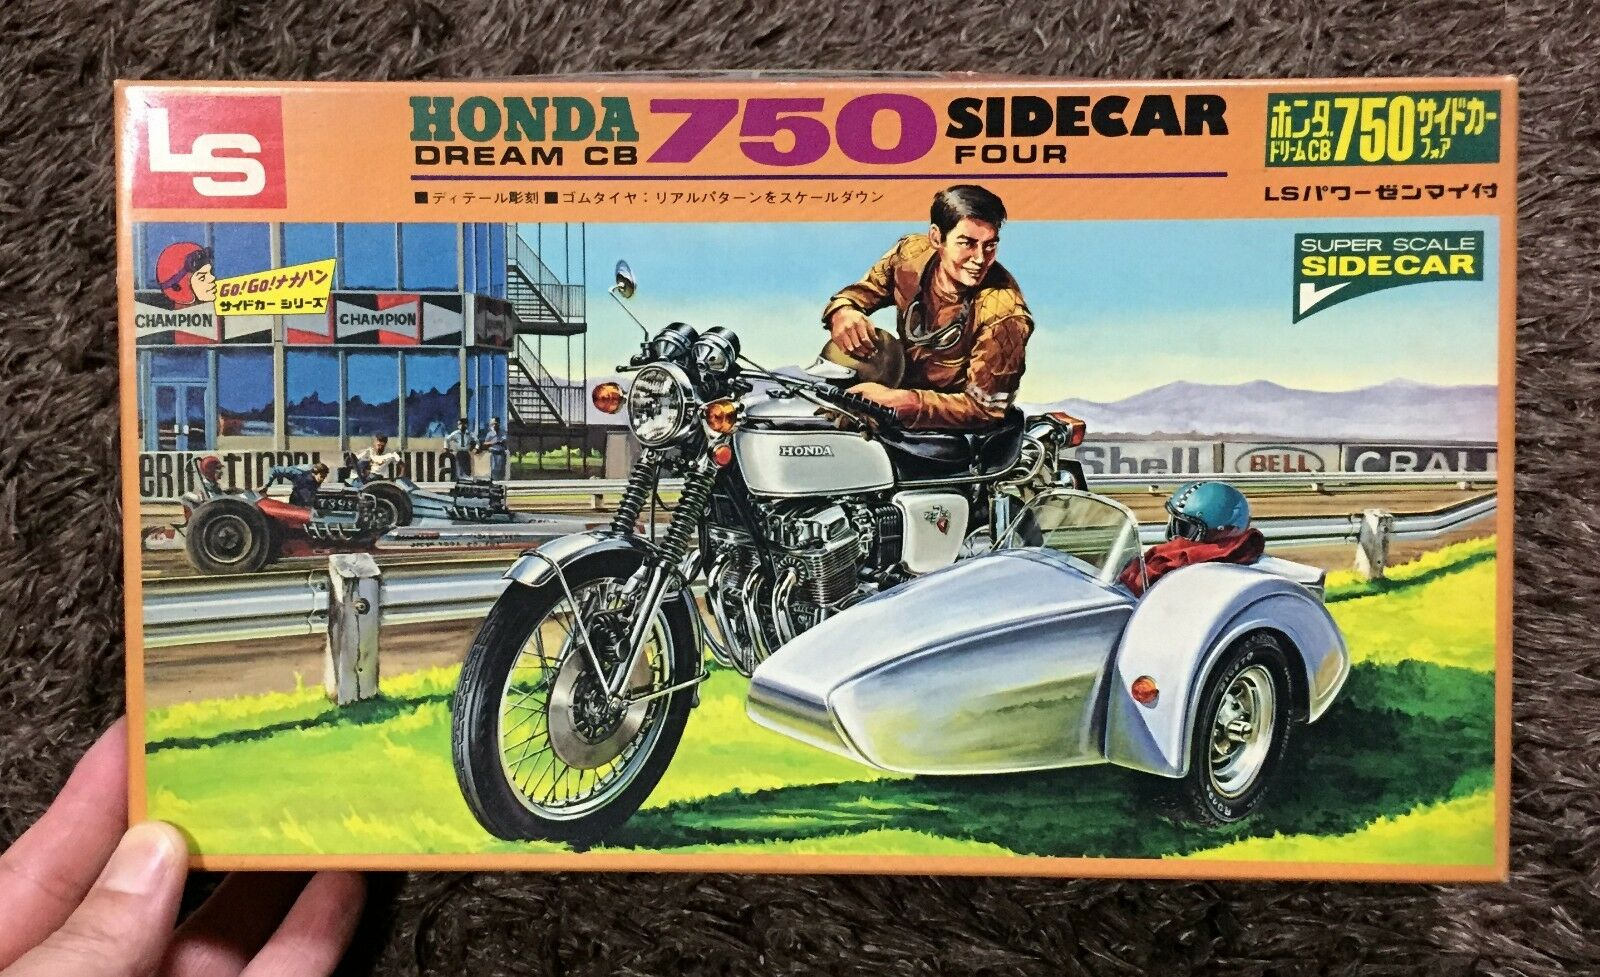 HONDA DREAM CB 750 FOUR SIDECAR PLASTIC MODEL KIT LS JAPAN